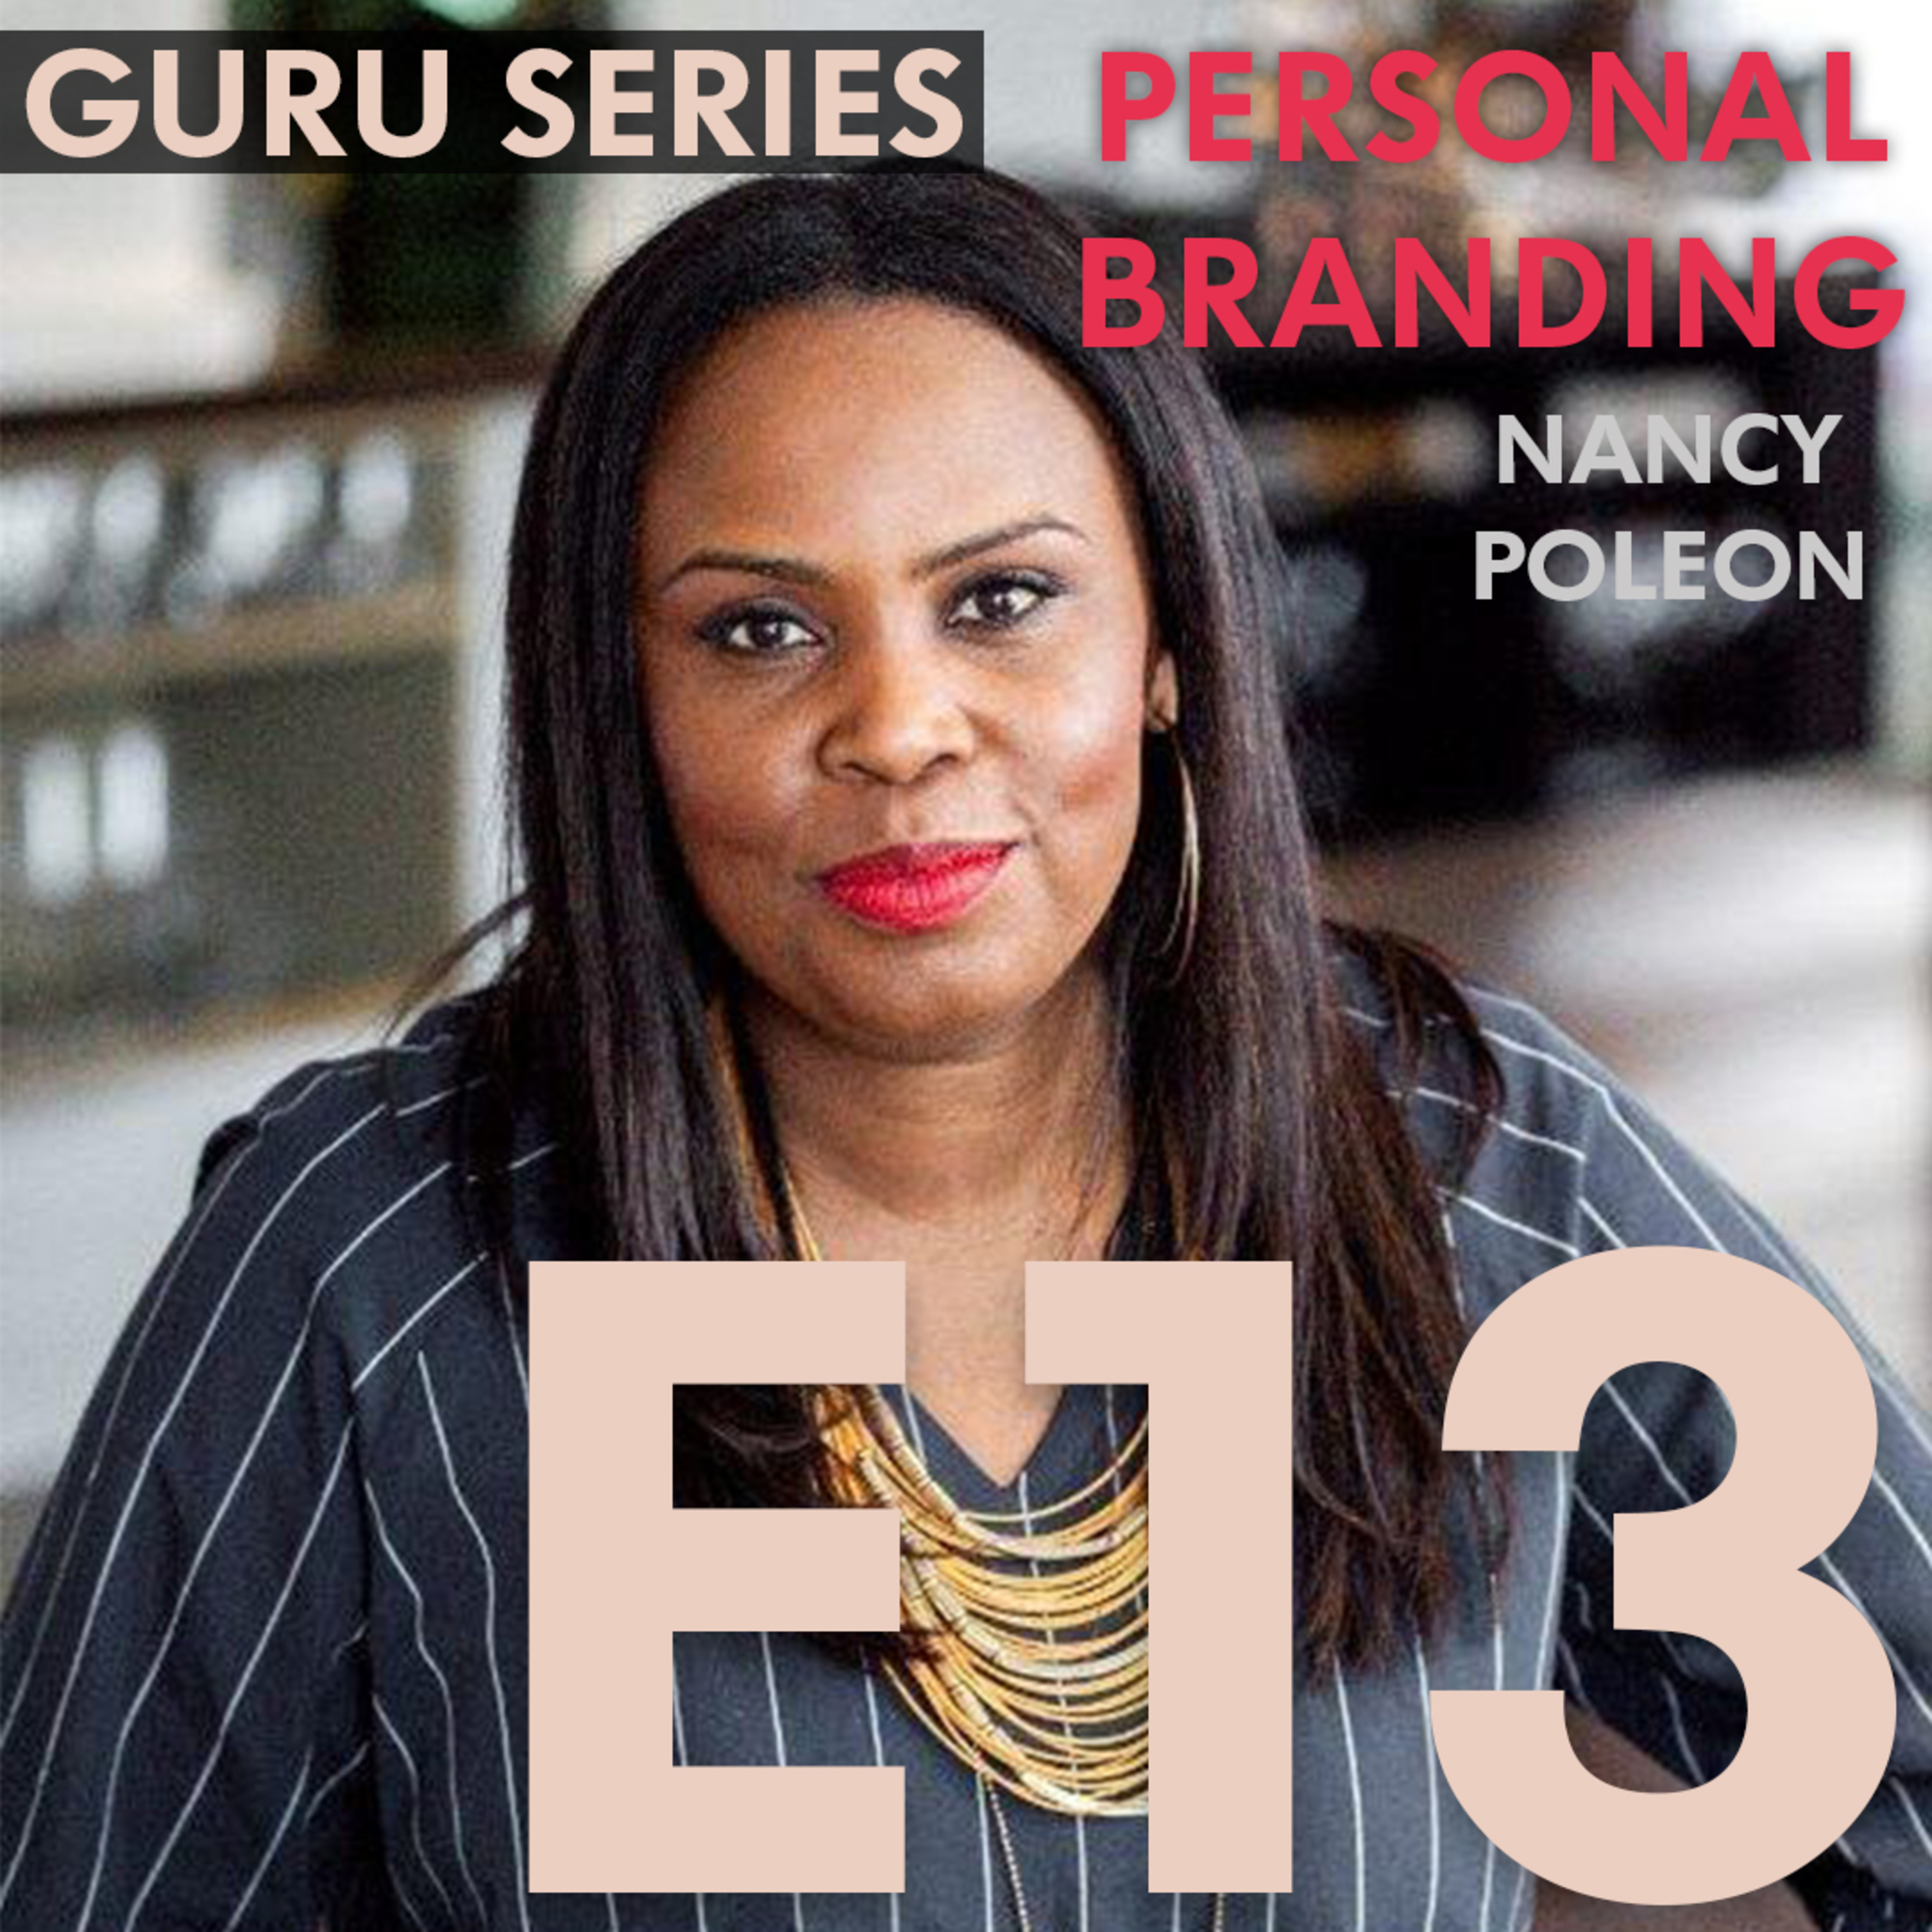 Personal Branding for Women: What, How, and Why?